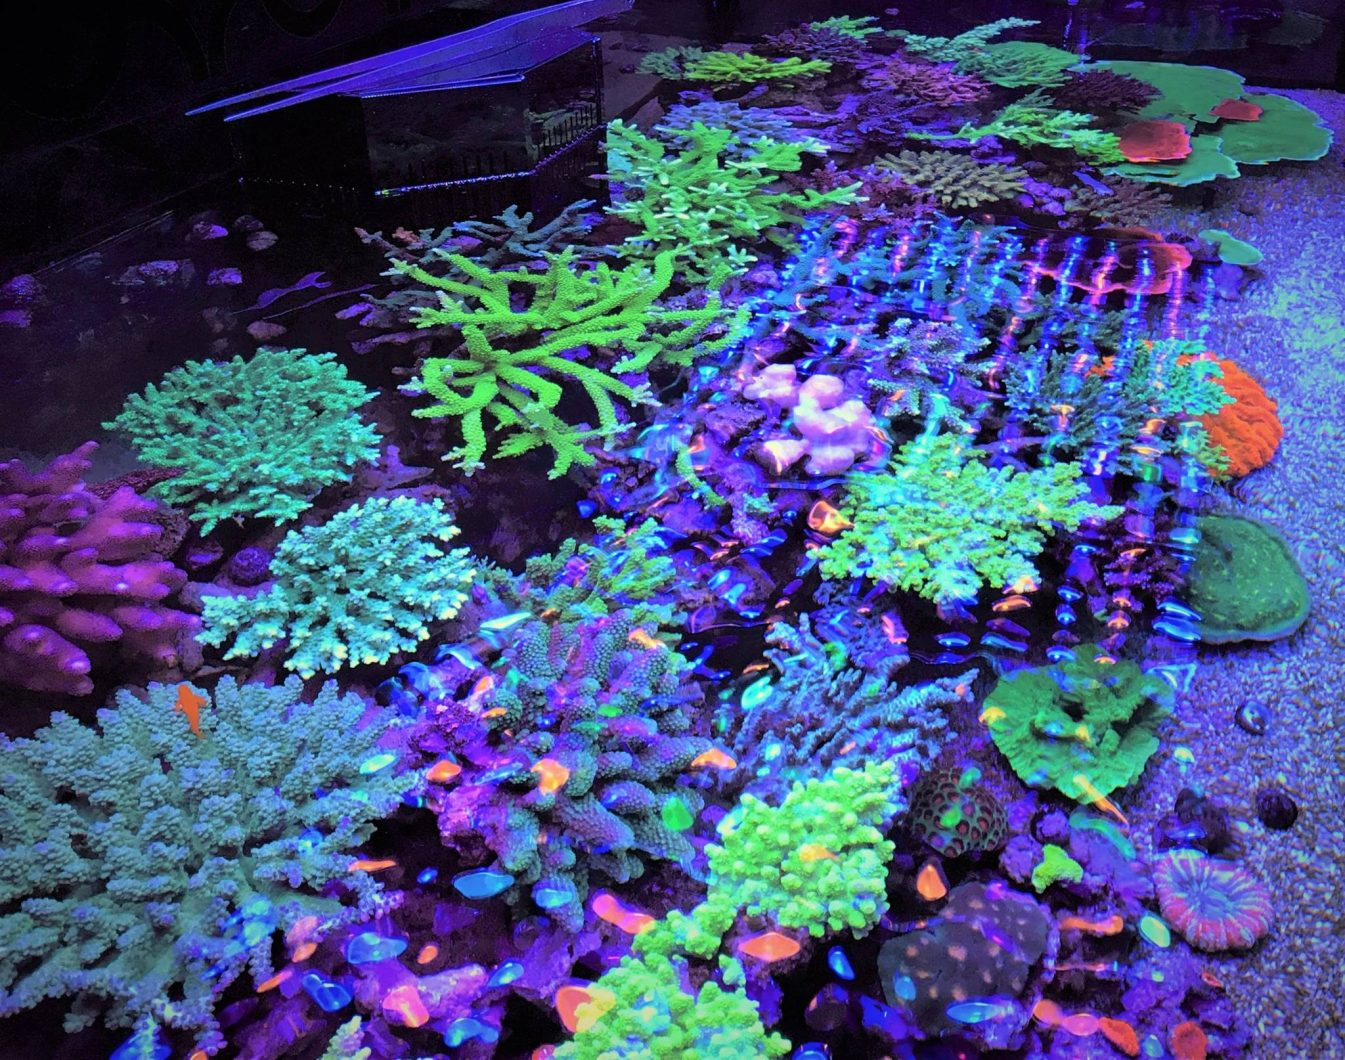 SPS-CORAL-LED-Aquarium-Éclairage-Orphek00029